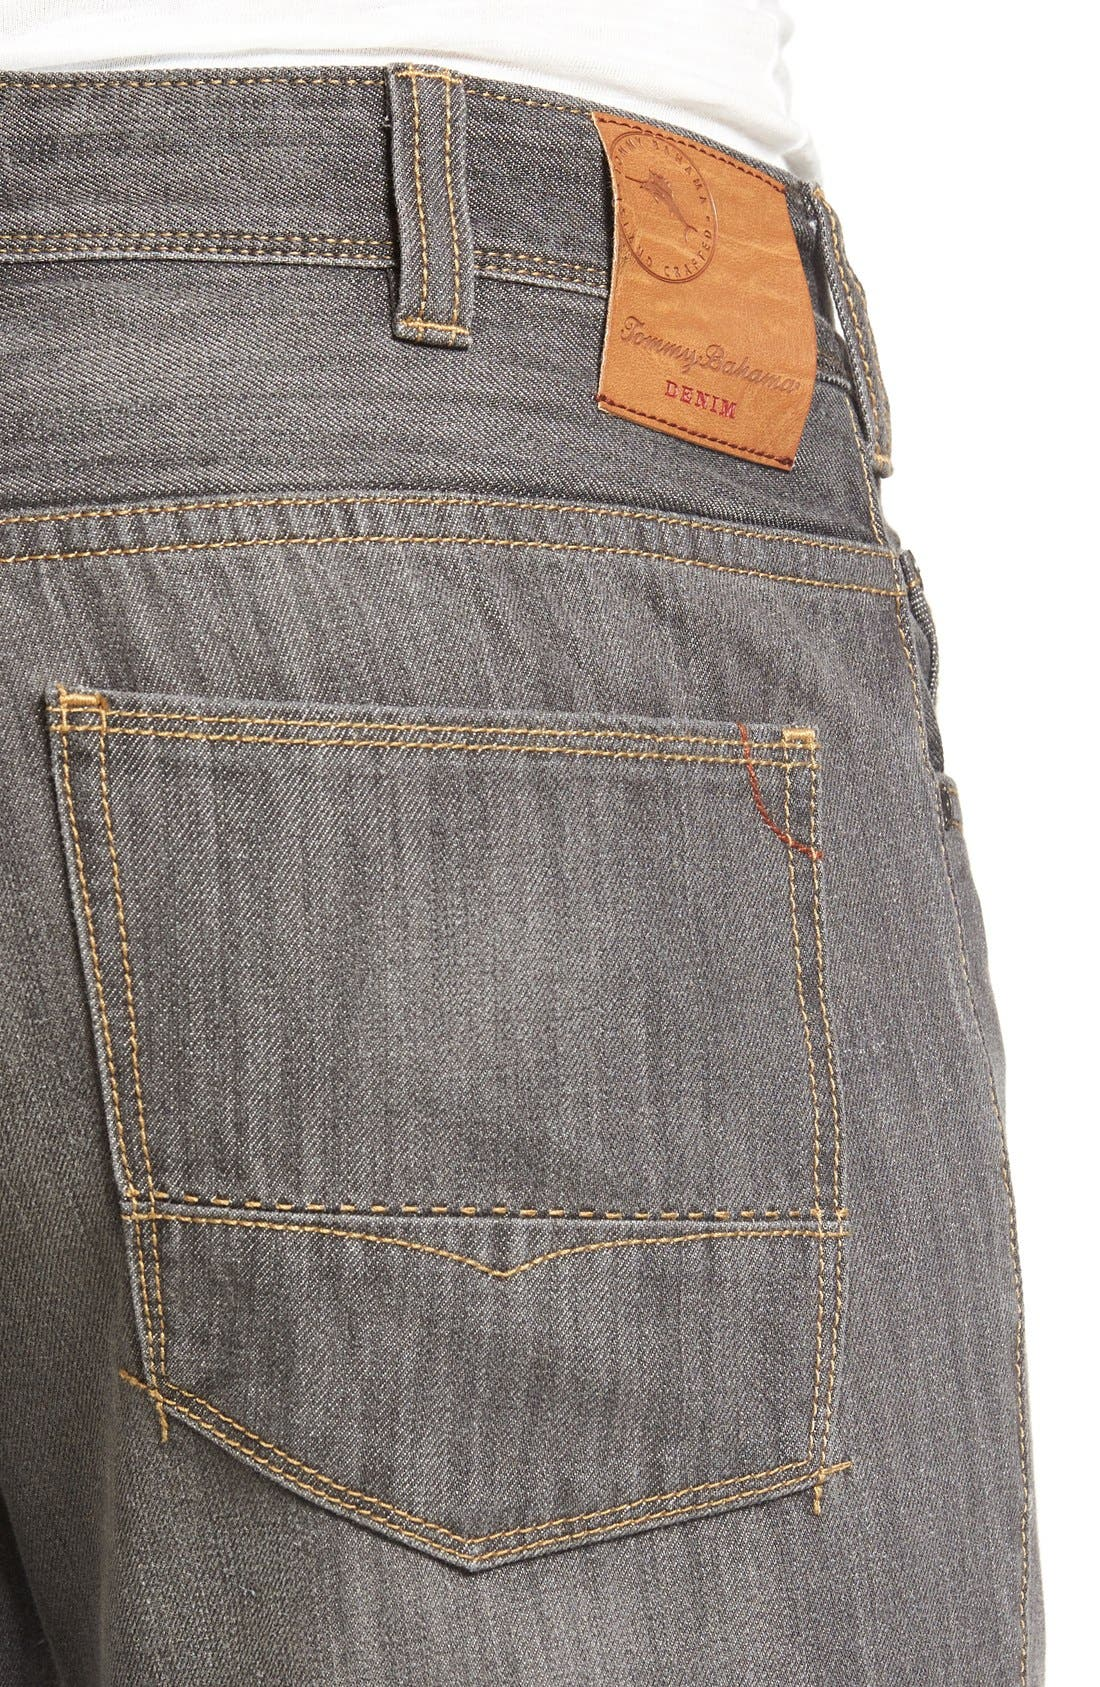 Barbados Bootcut Jeans,                             Alternate thumbnail 3, color,                             050